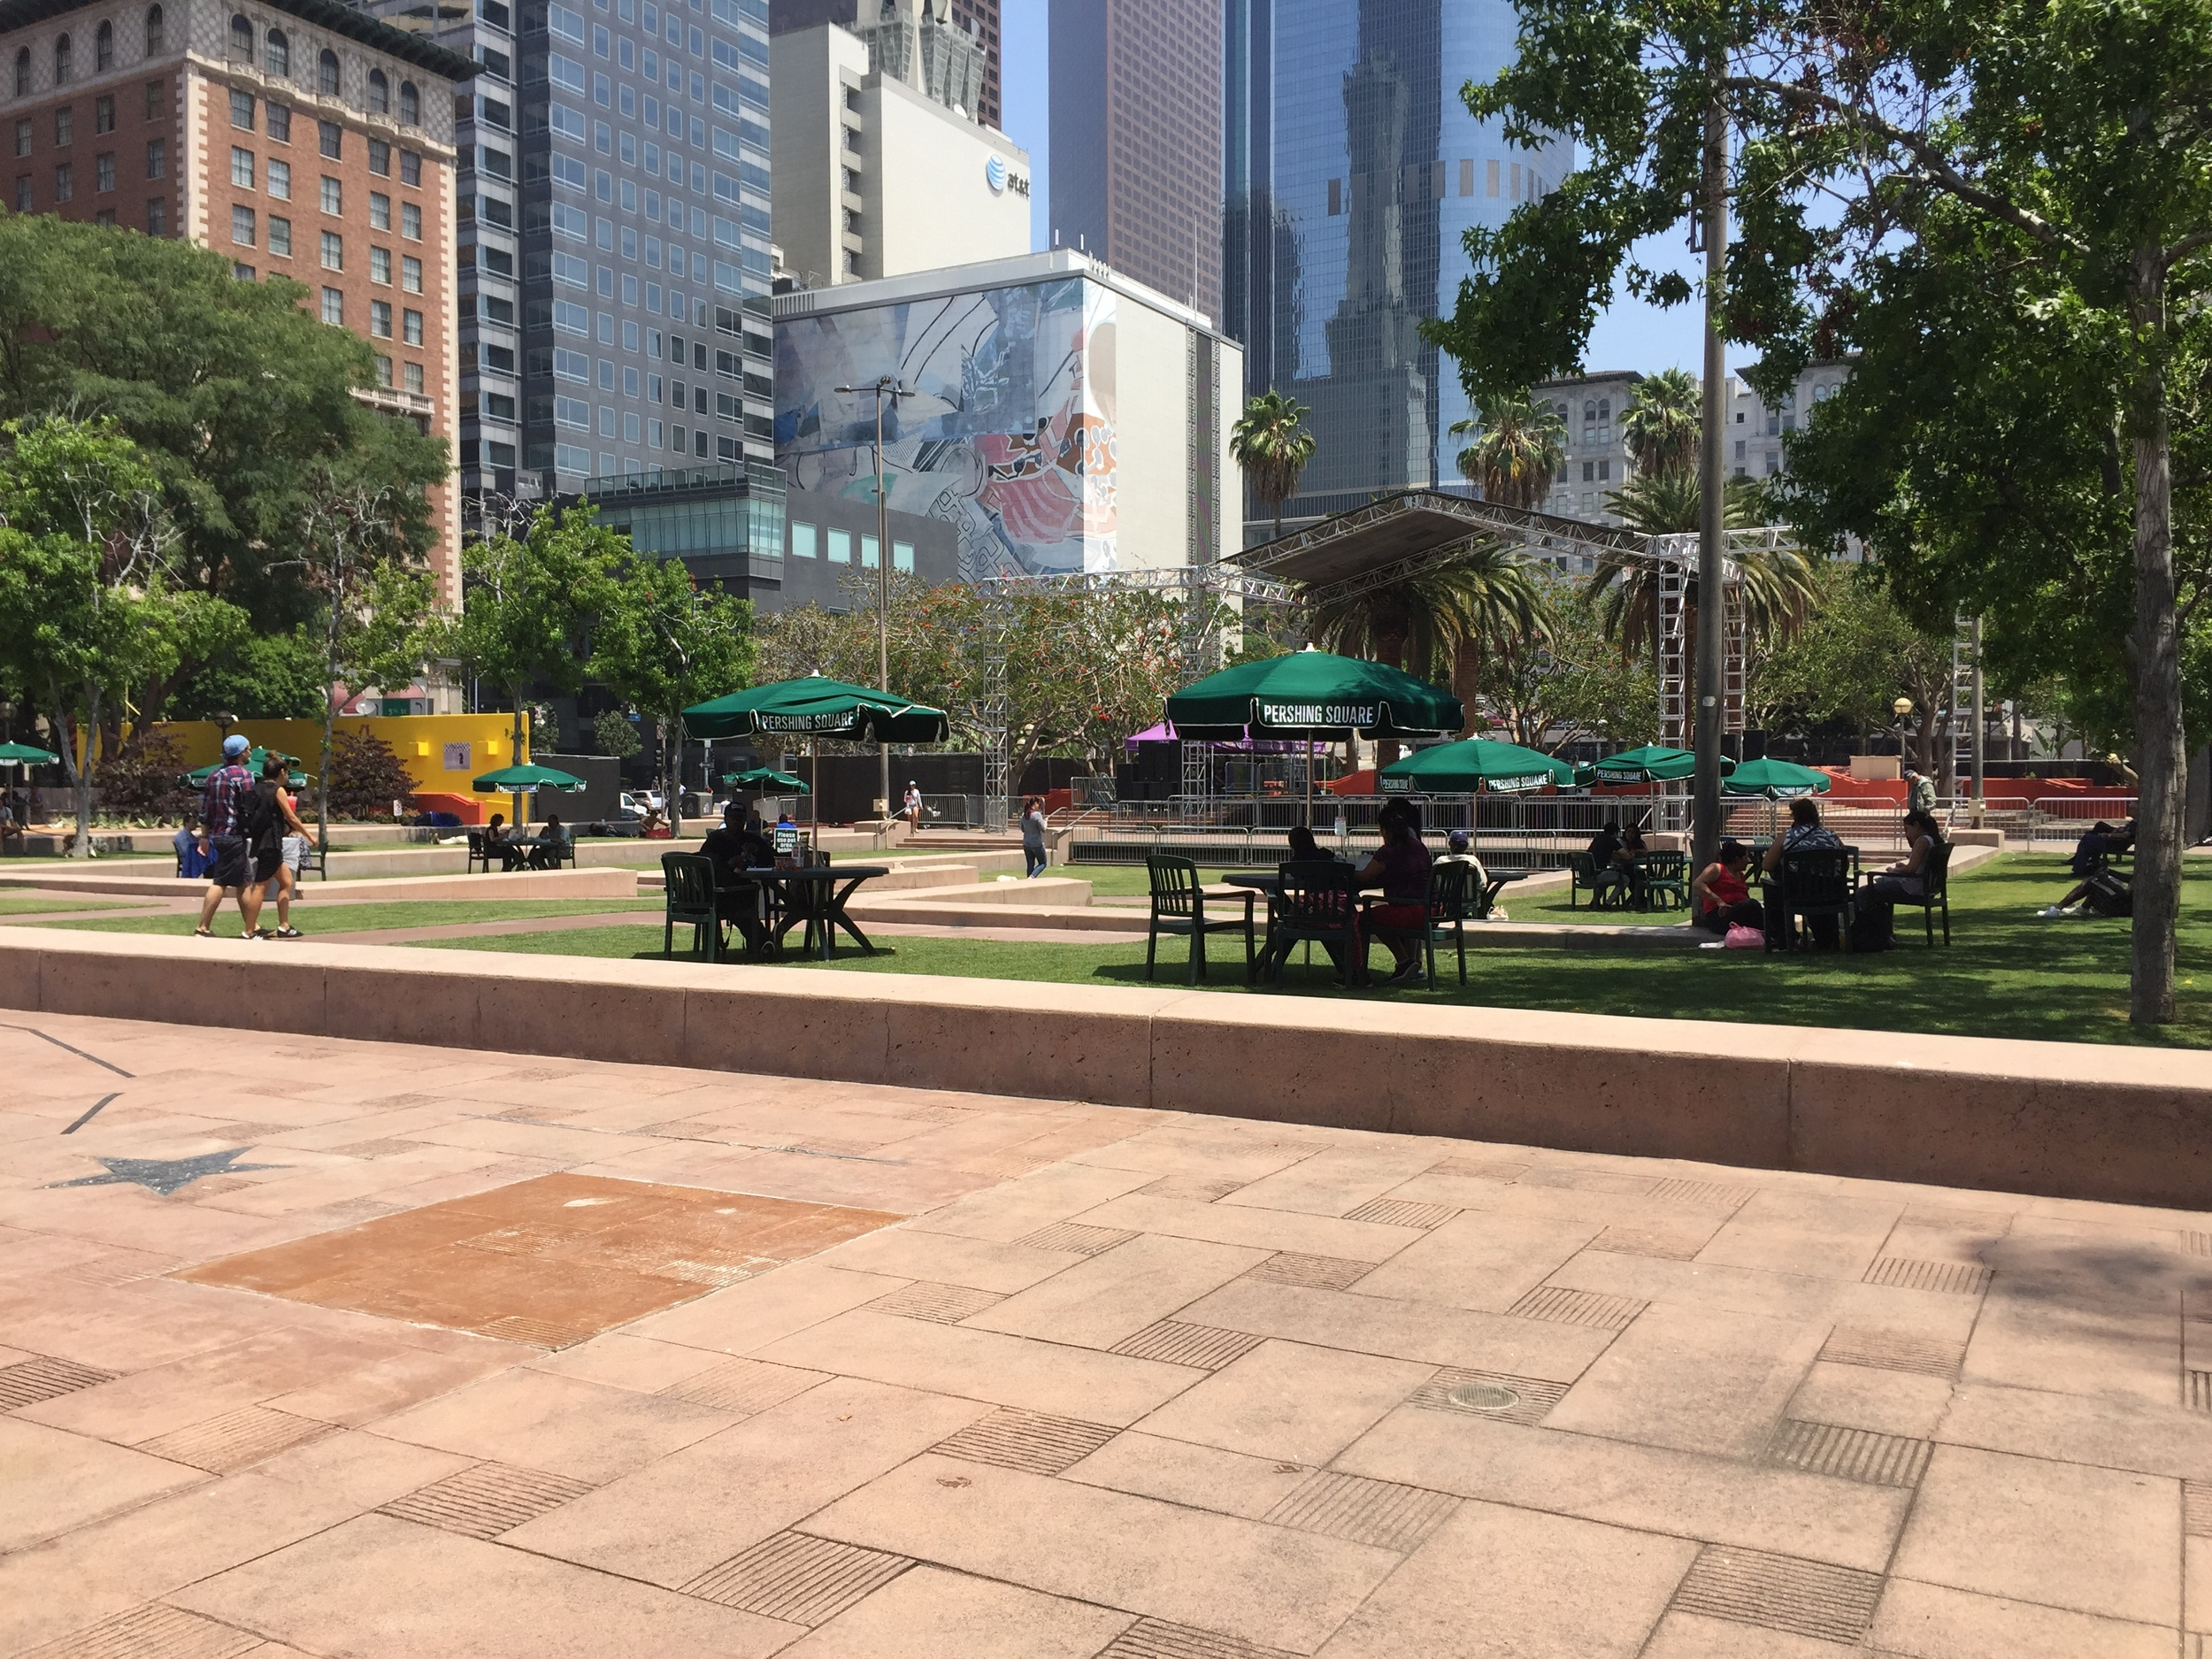 New tables and umbrellas for lunchtime patrons. (photo by David Douglass-Jaimes)